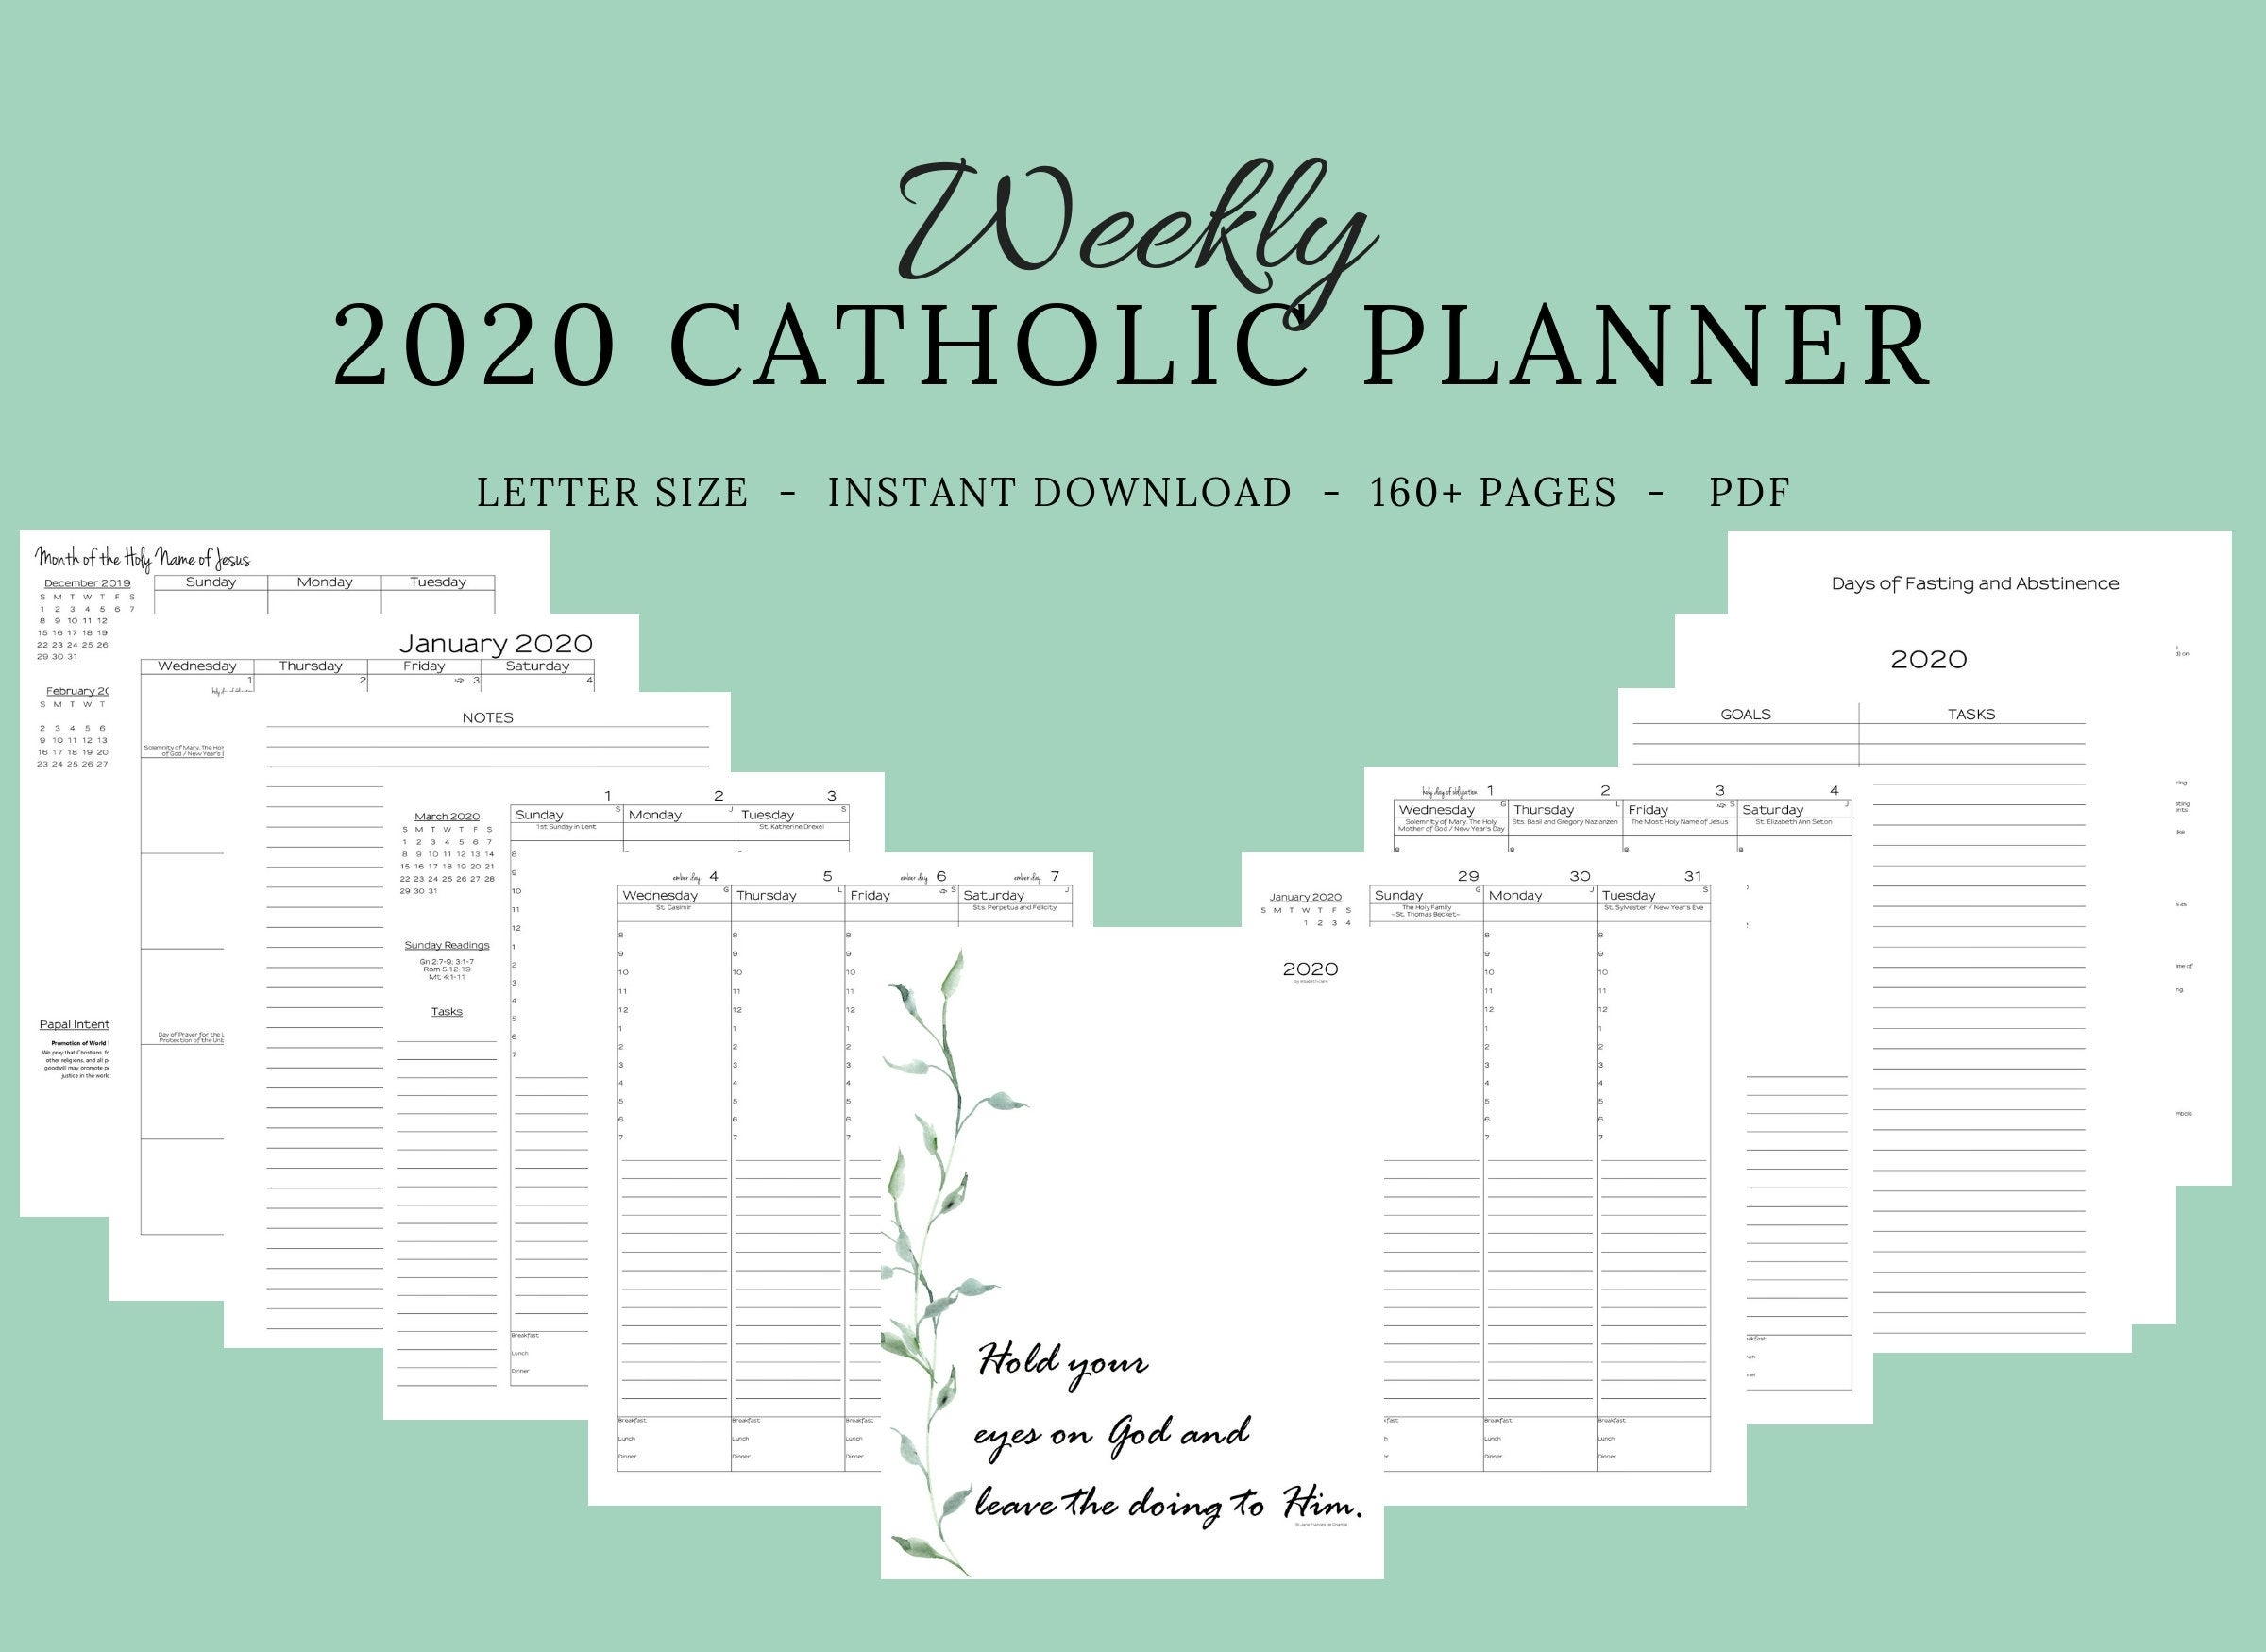 2020 Catholic Planner Weekly Printable: Daily Planner / | Etsy pertaining to Catholic Liturgical Calendar 2020 Printable